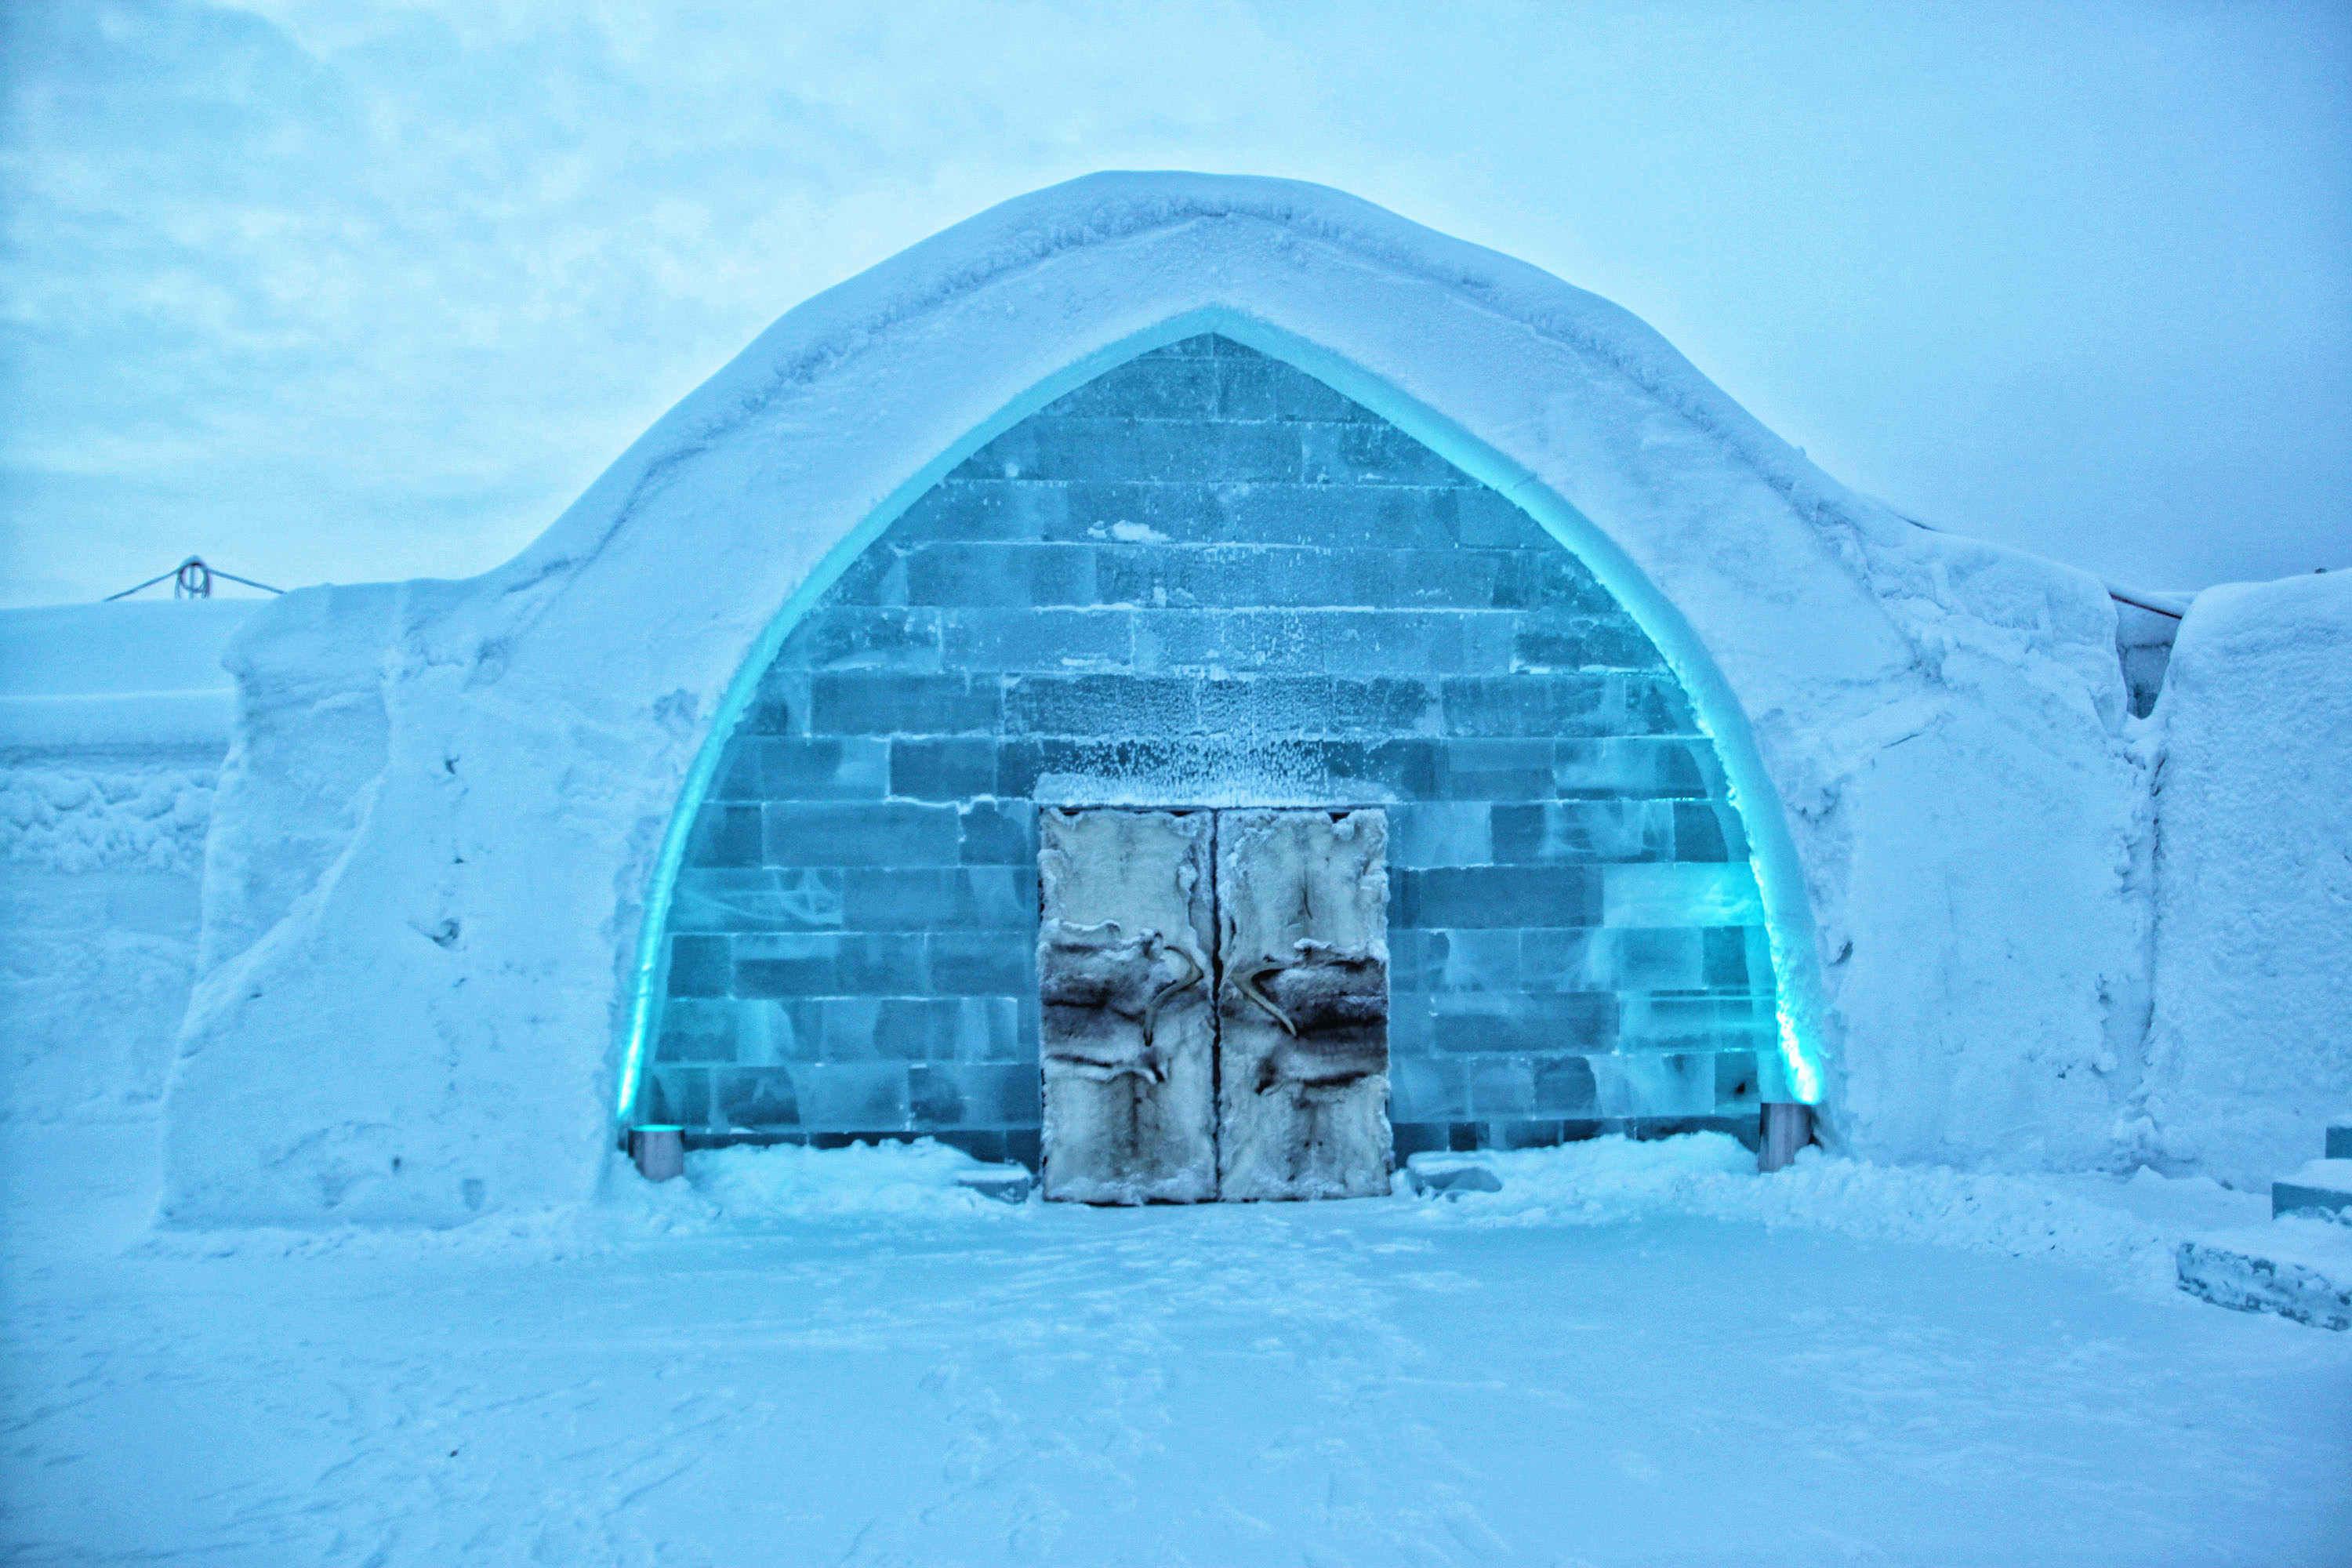 The Ice Hotel, Jukkasjärvi, Sweden